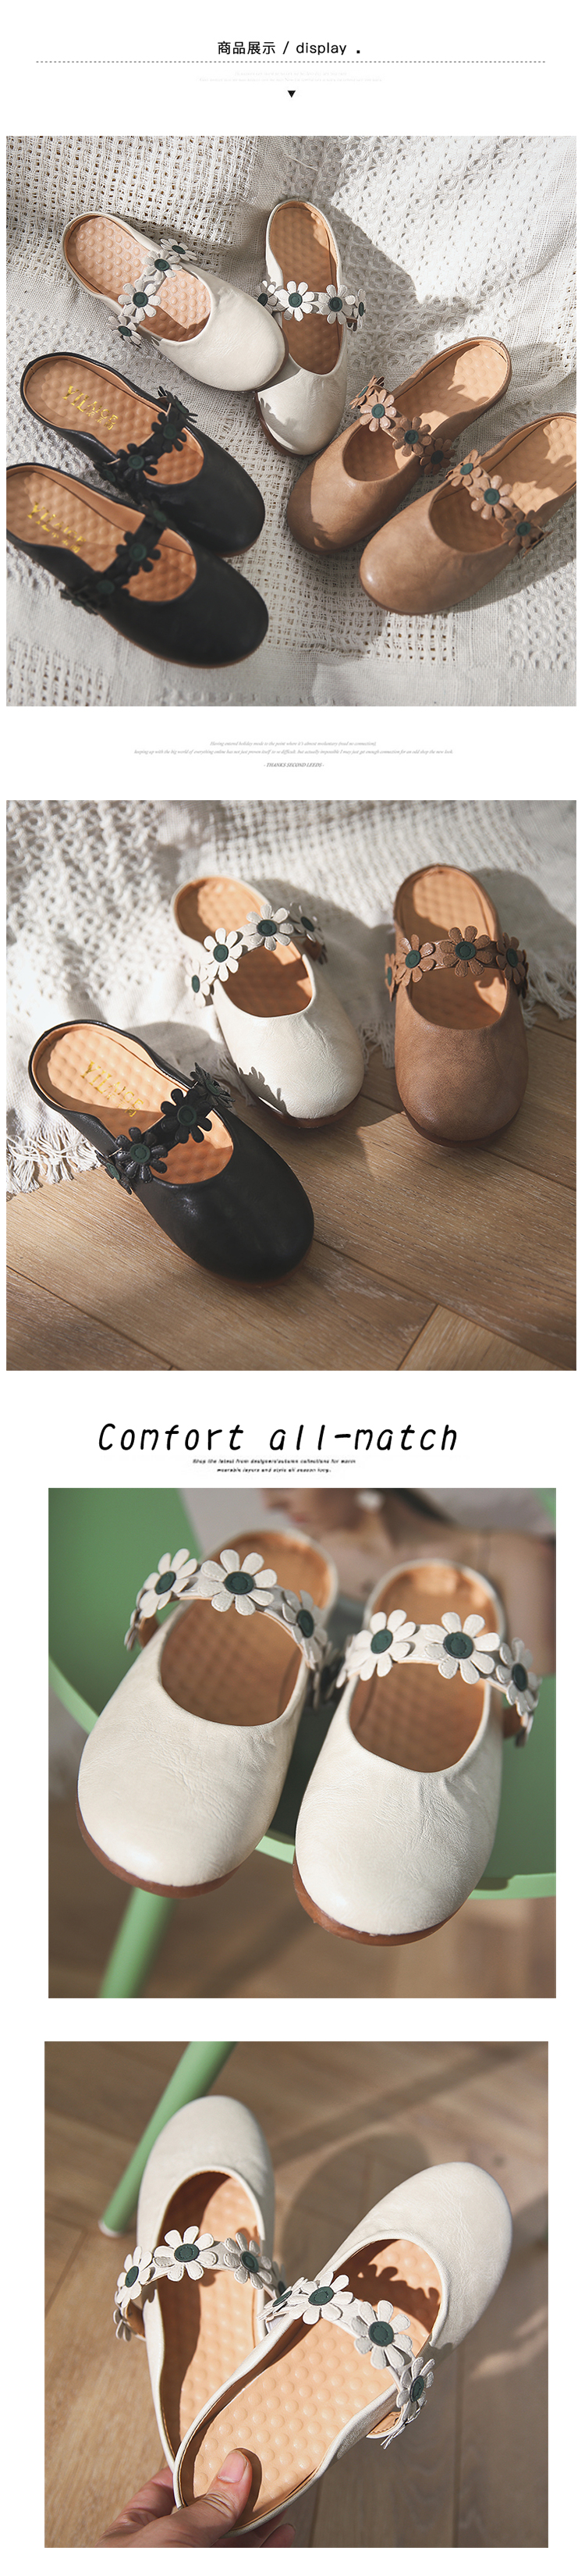 Women's Summer Shoes Baotou 2018 Summer Flower Sexy Sweet Comfortable, Casual Flat Bottomed Women's Leather Shoes6.15 8